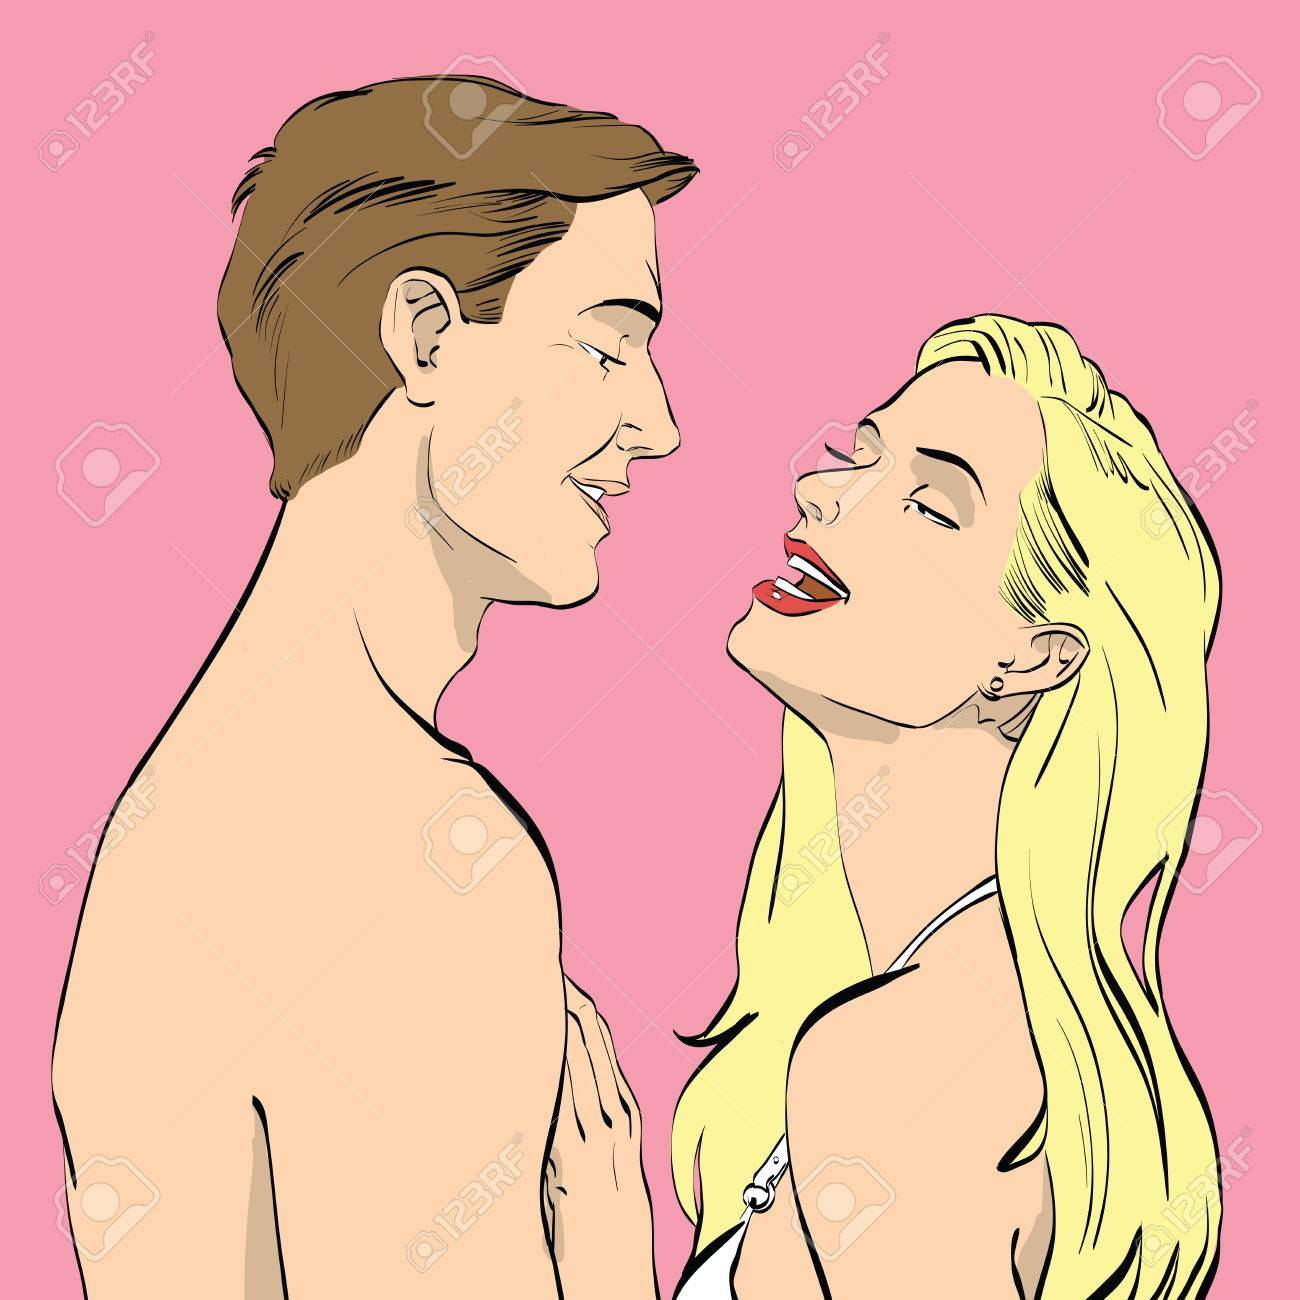 Illustration - Man and woman couple in love sex. Hand drawing color  illustration